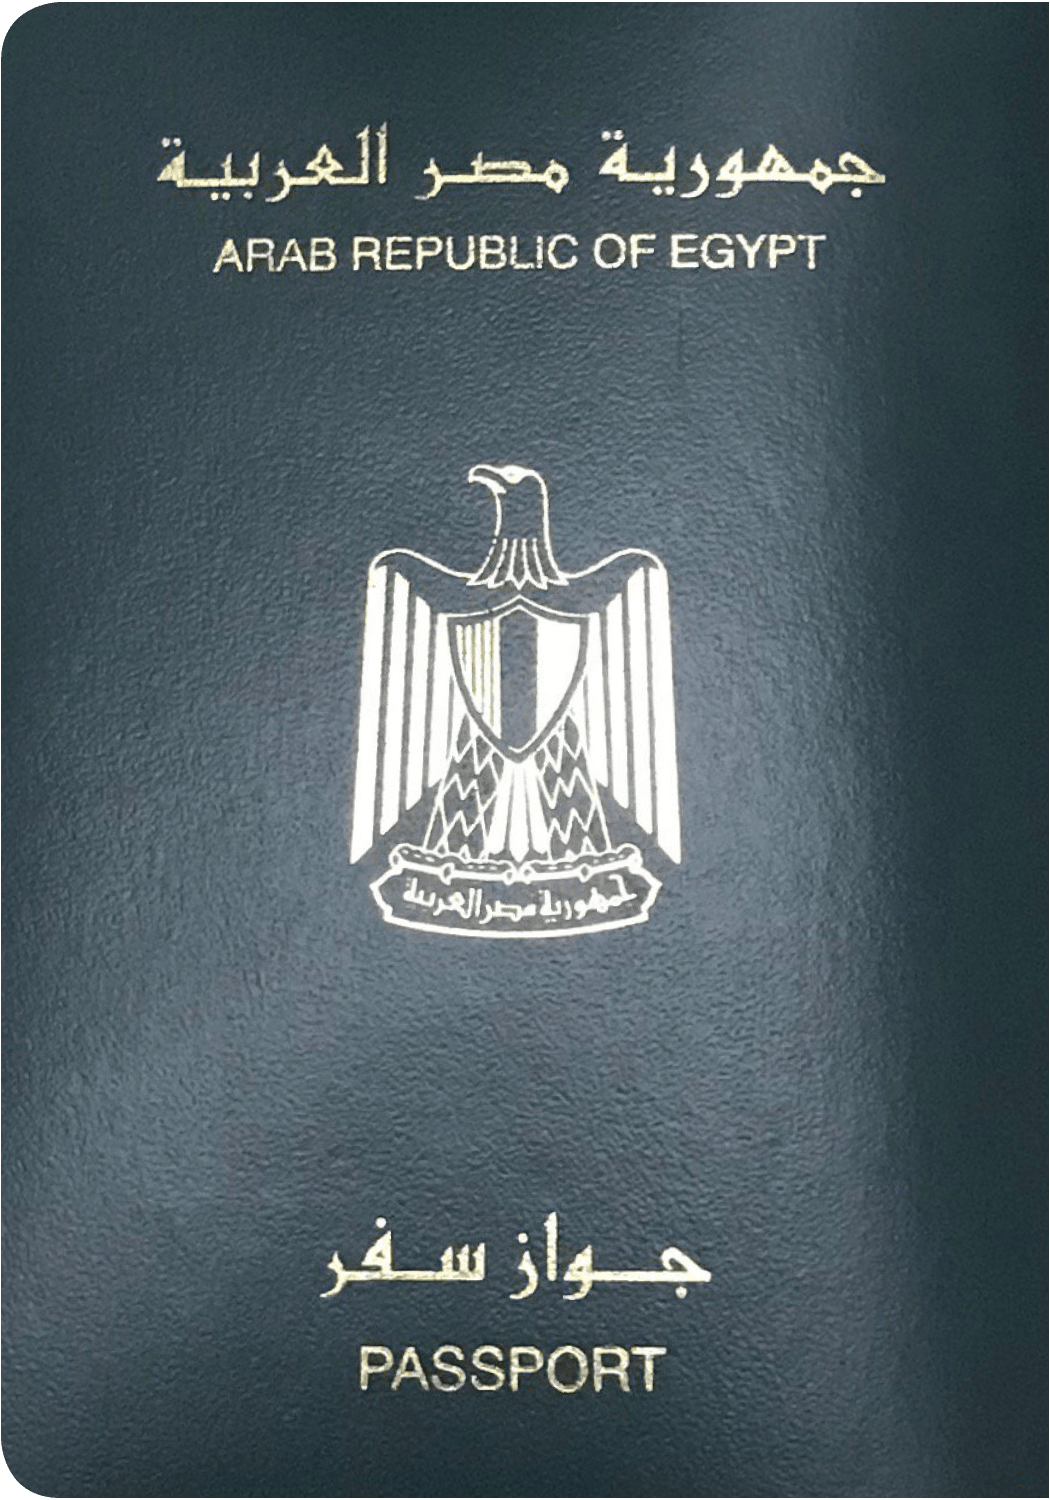 A regular or ordinary Egyptian passport - Front side